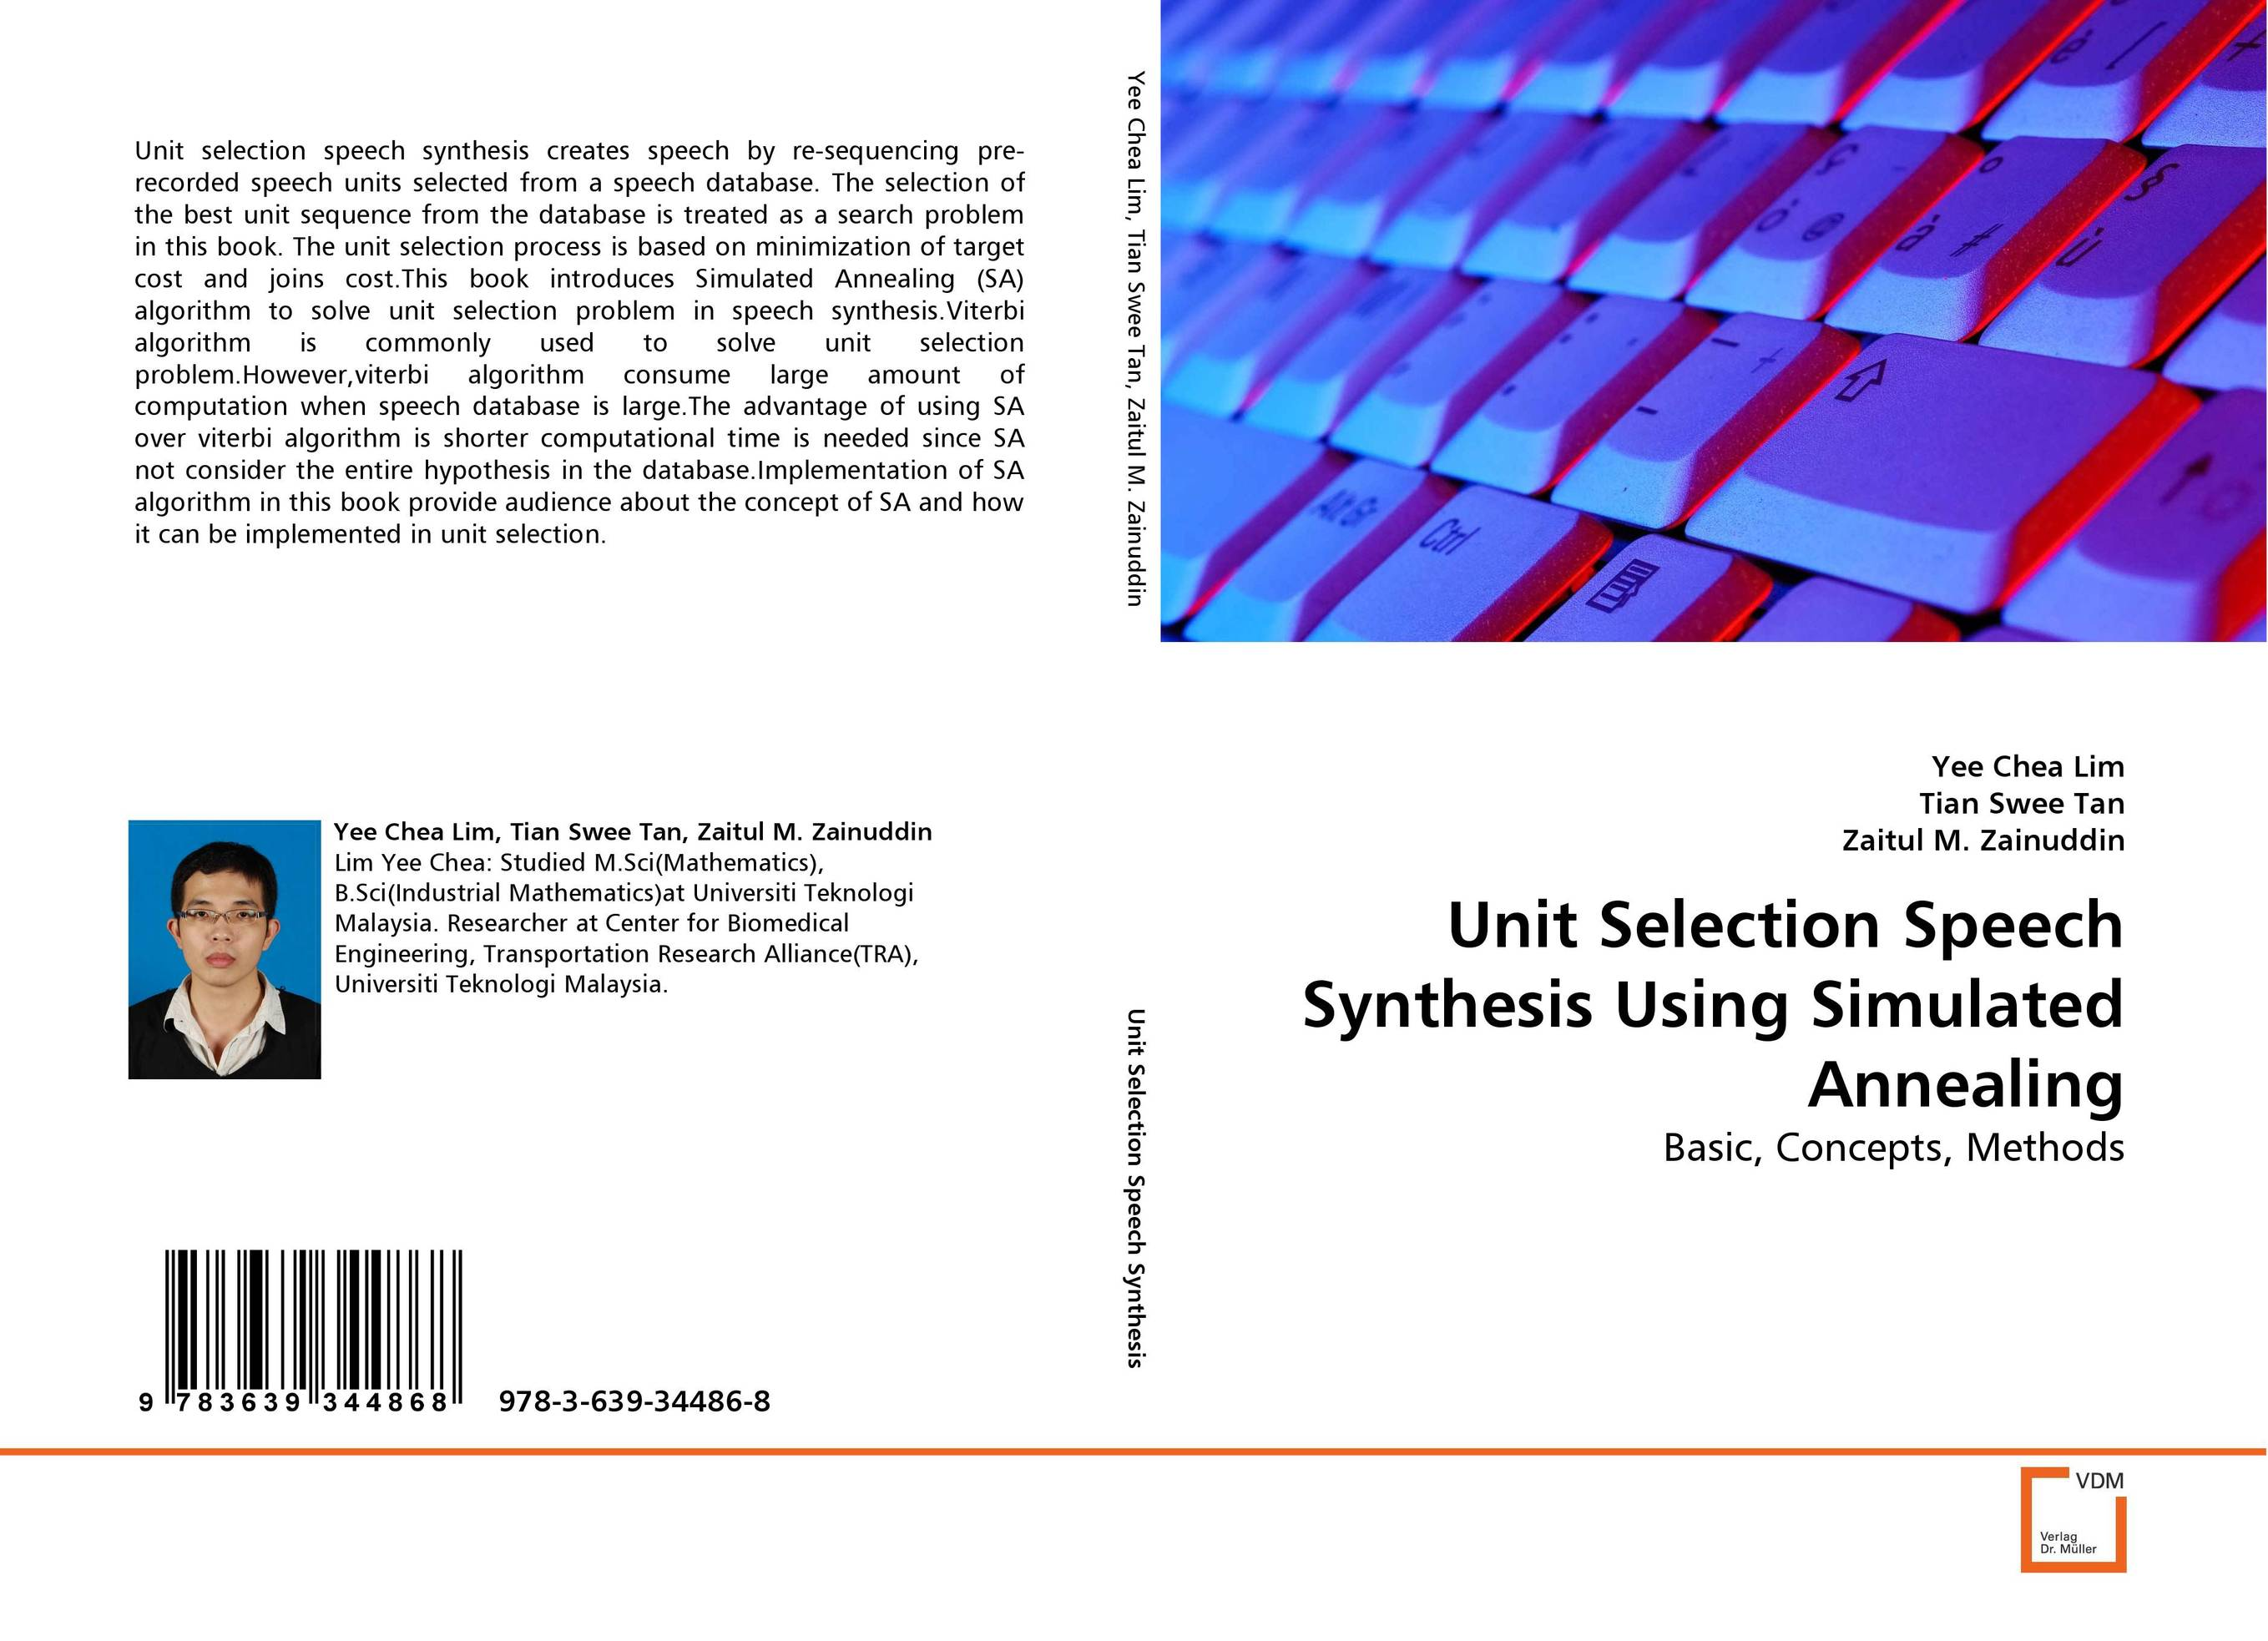 Unit Selection Speech Synthesis Using Simulated Annealing the selection